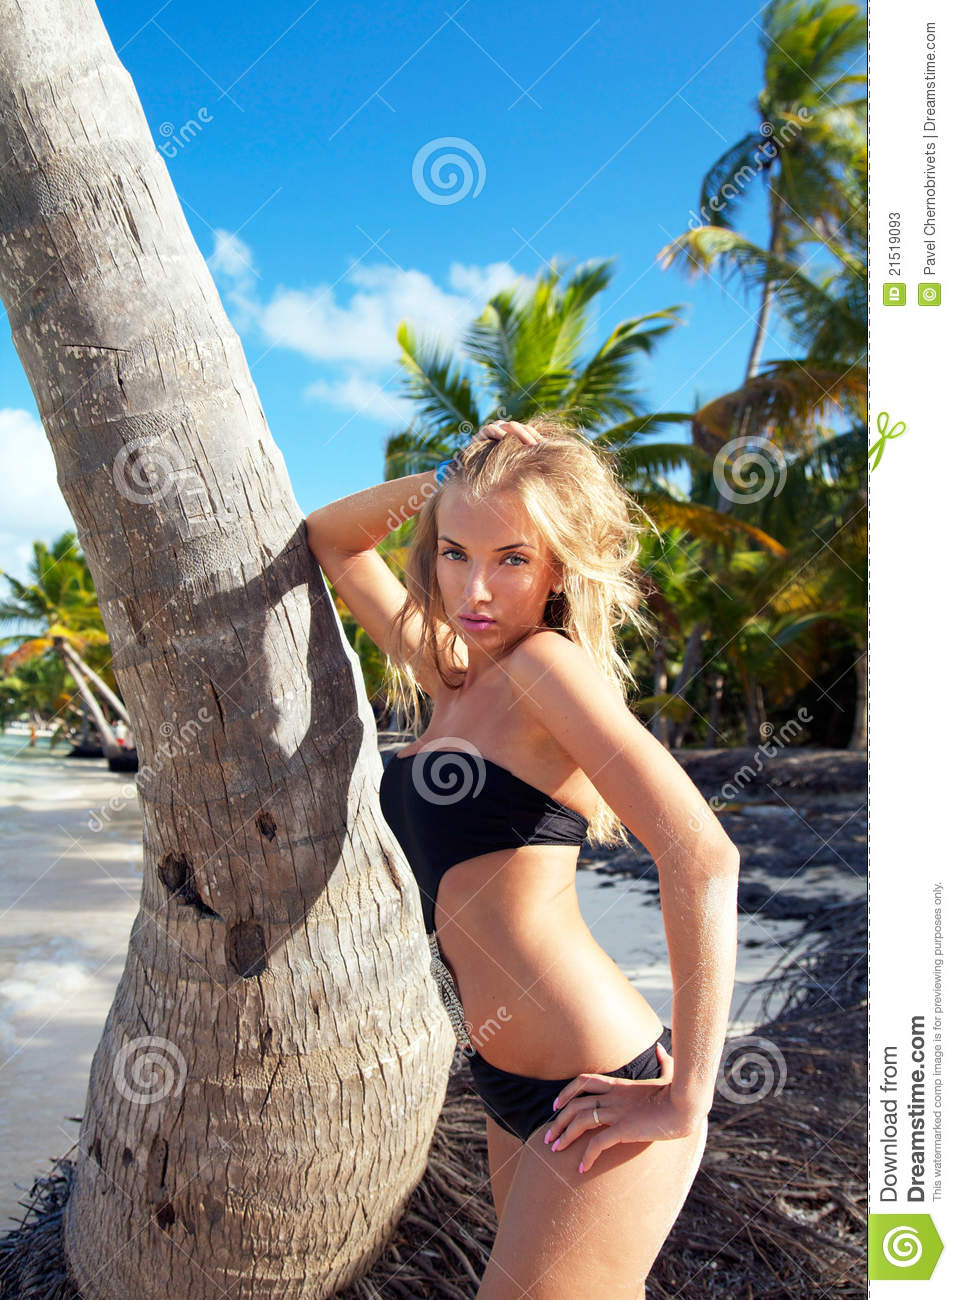 stockfotos blondes mdchen strand image